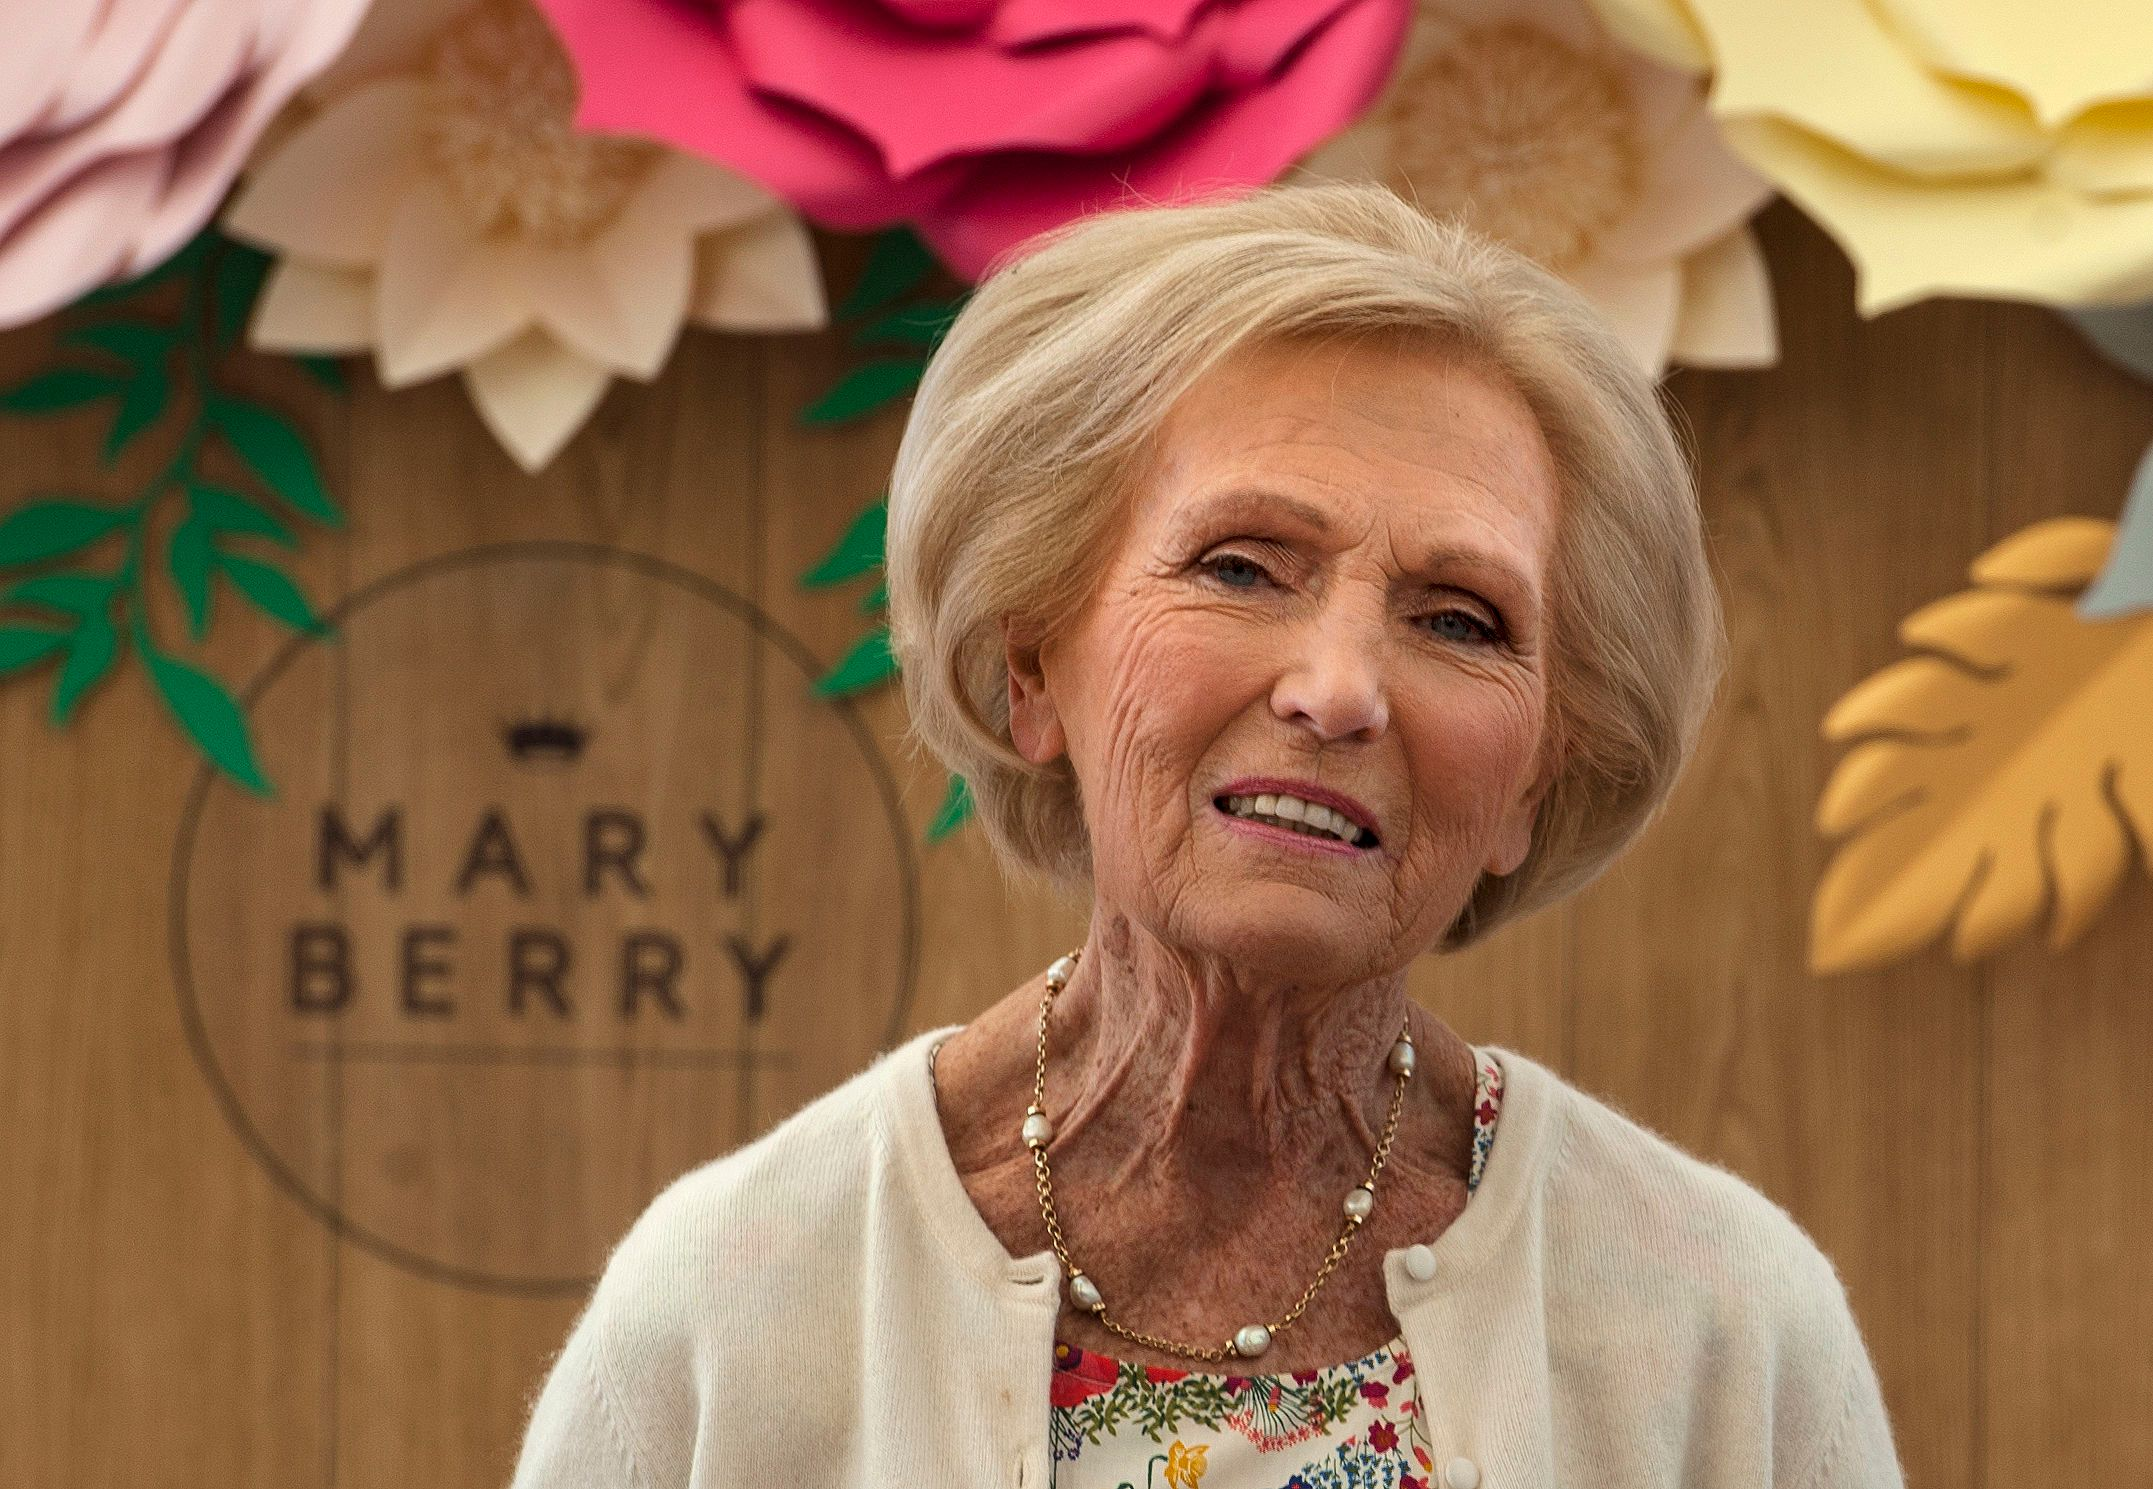 Mary Berry Lands An All-New BBC Judging Role